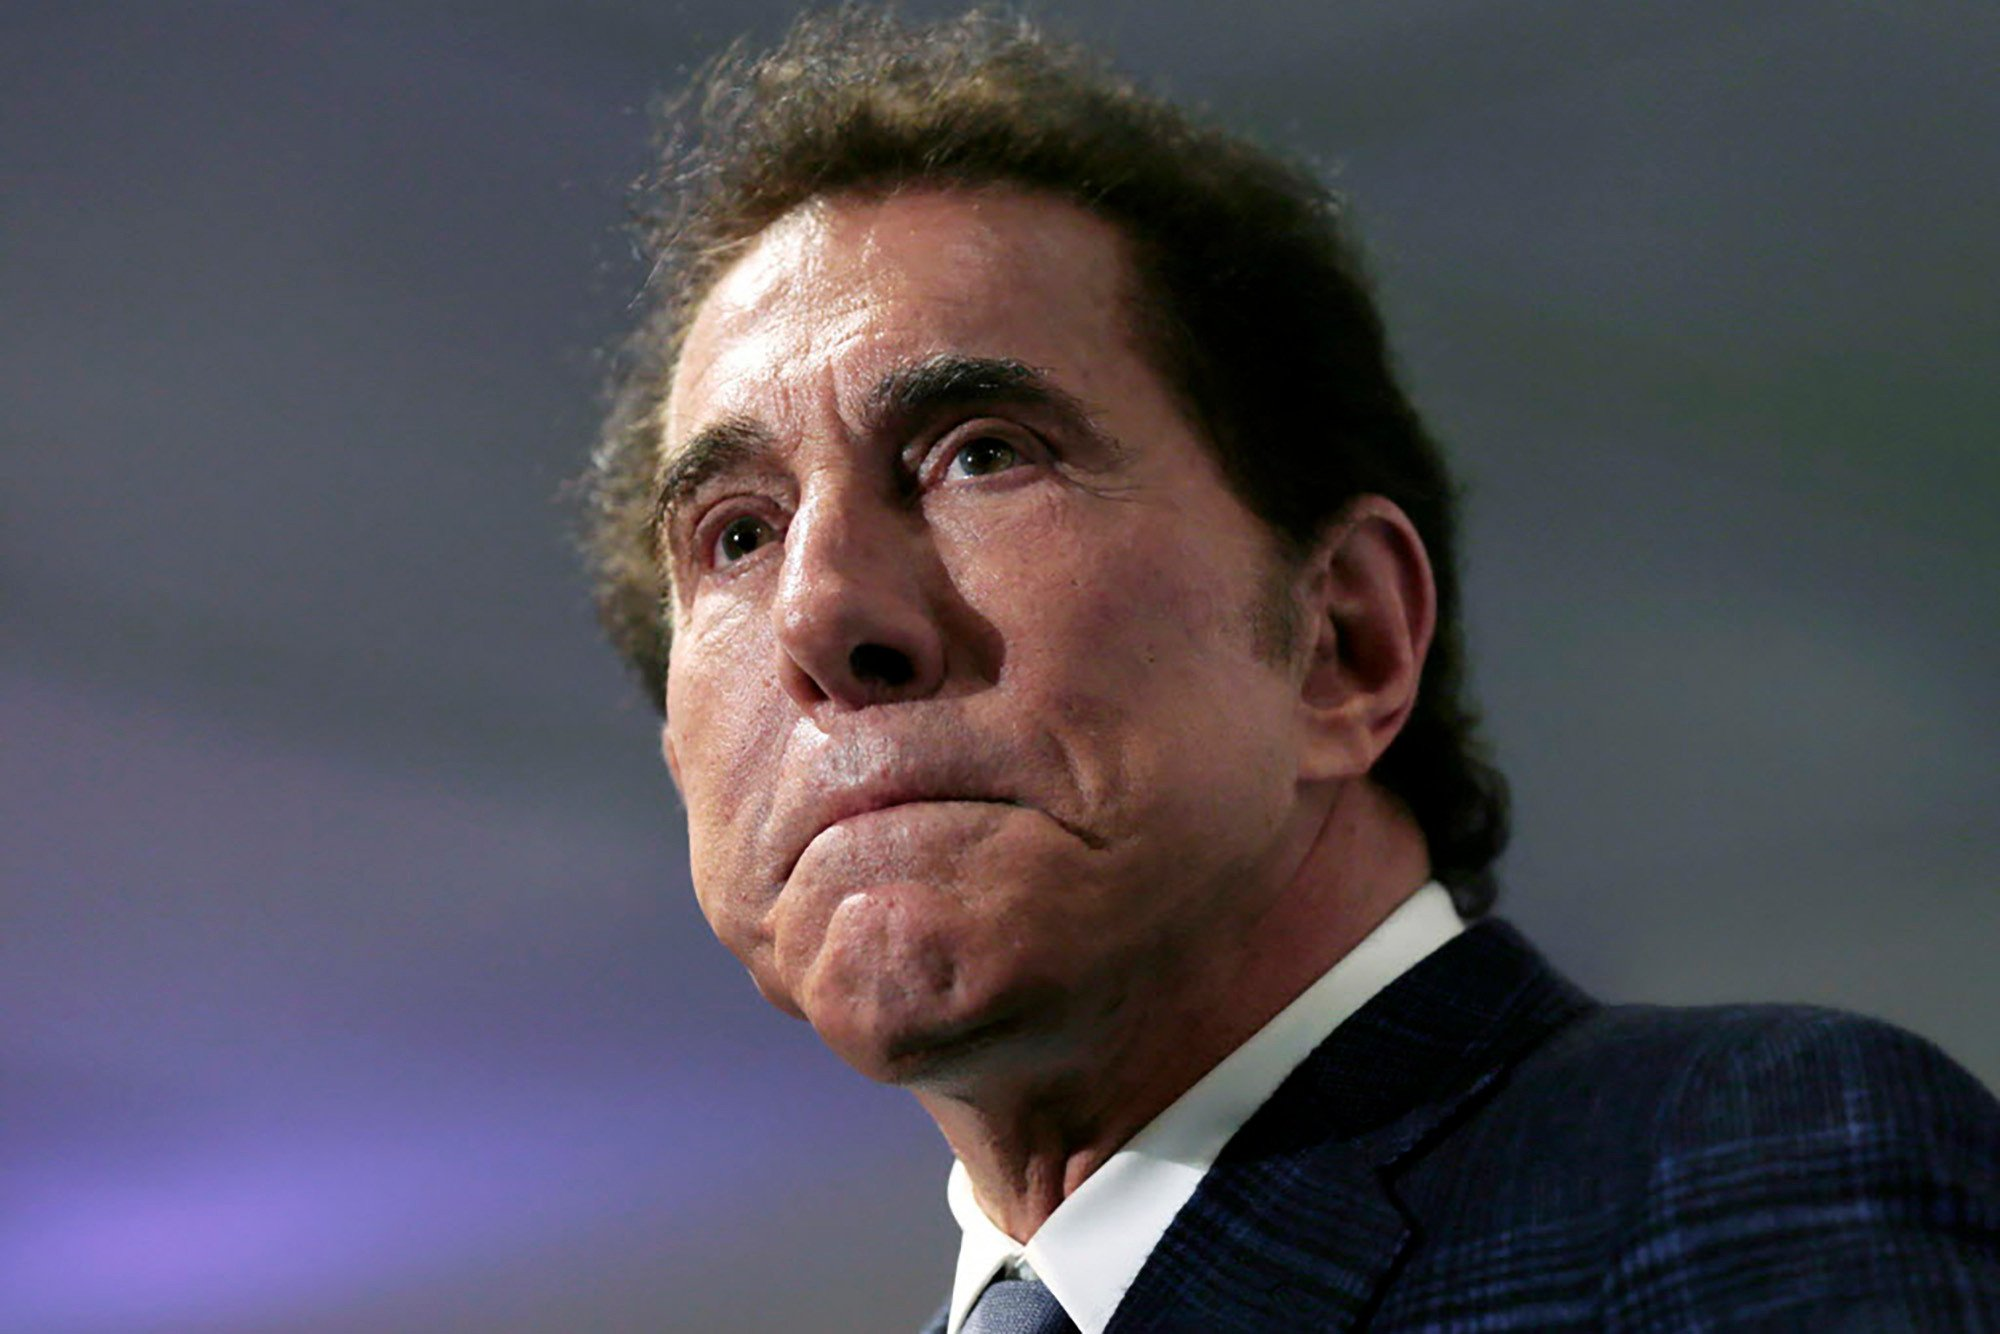 Wynn Resorts stock tumbles after sex assault claims